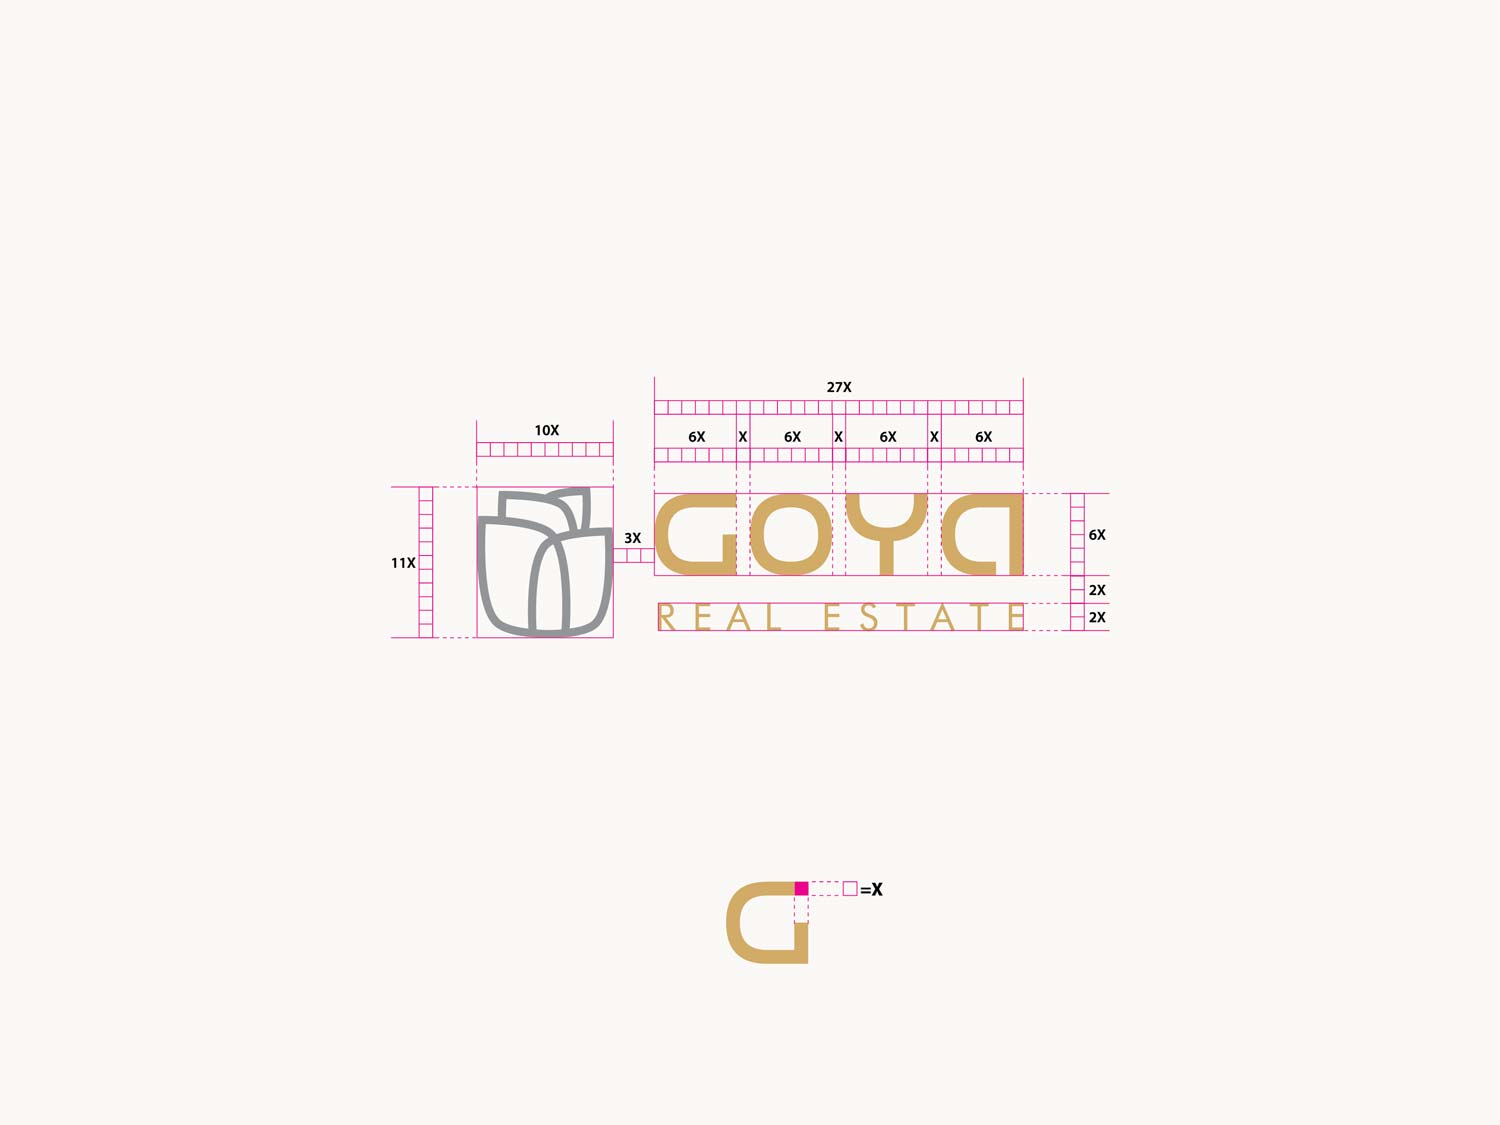 giset design goya real estate creacion del logo